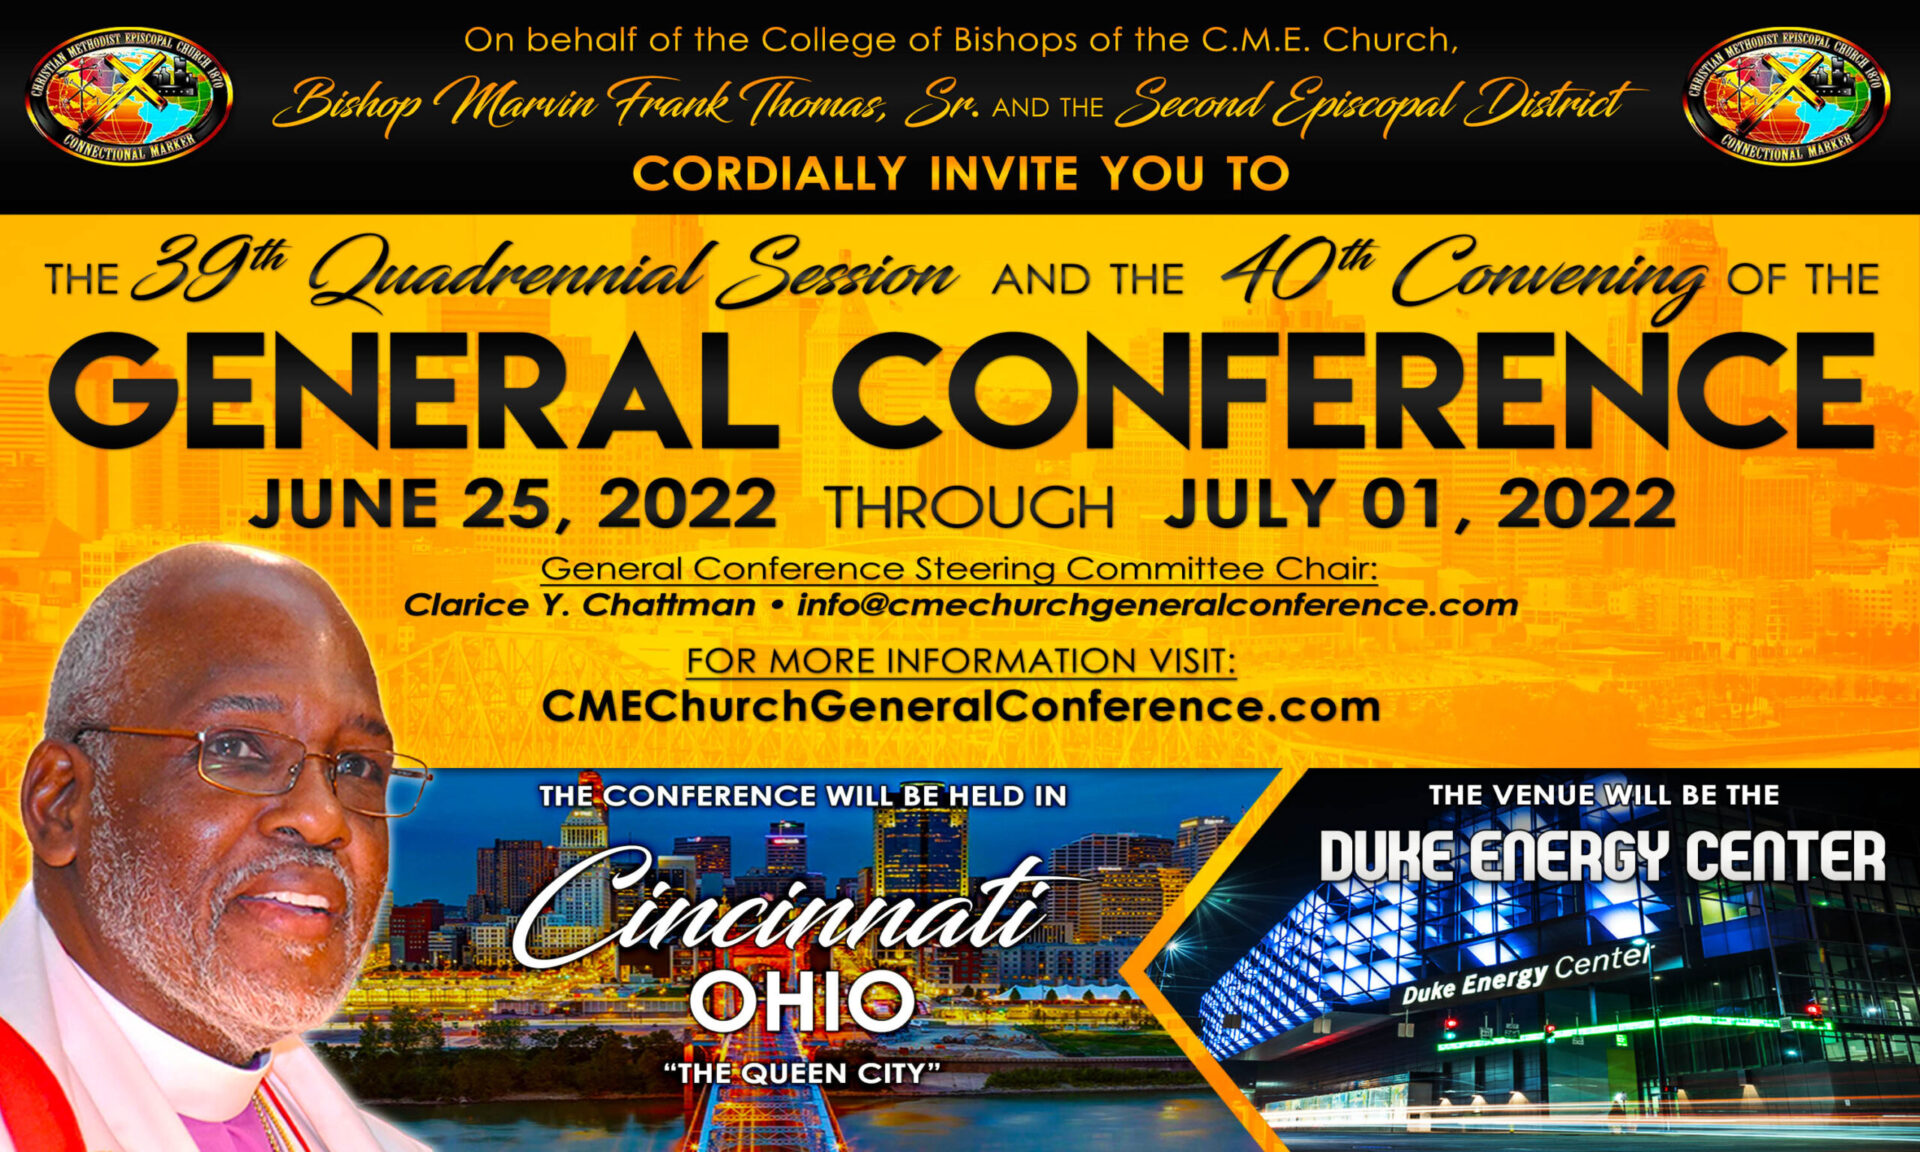 General Conference 2022